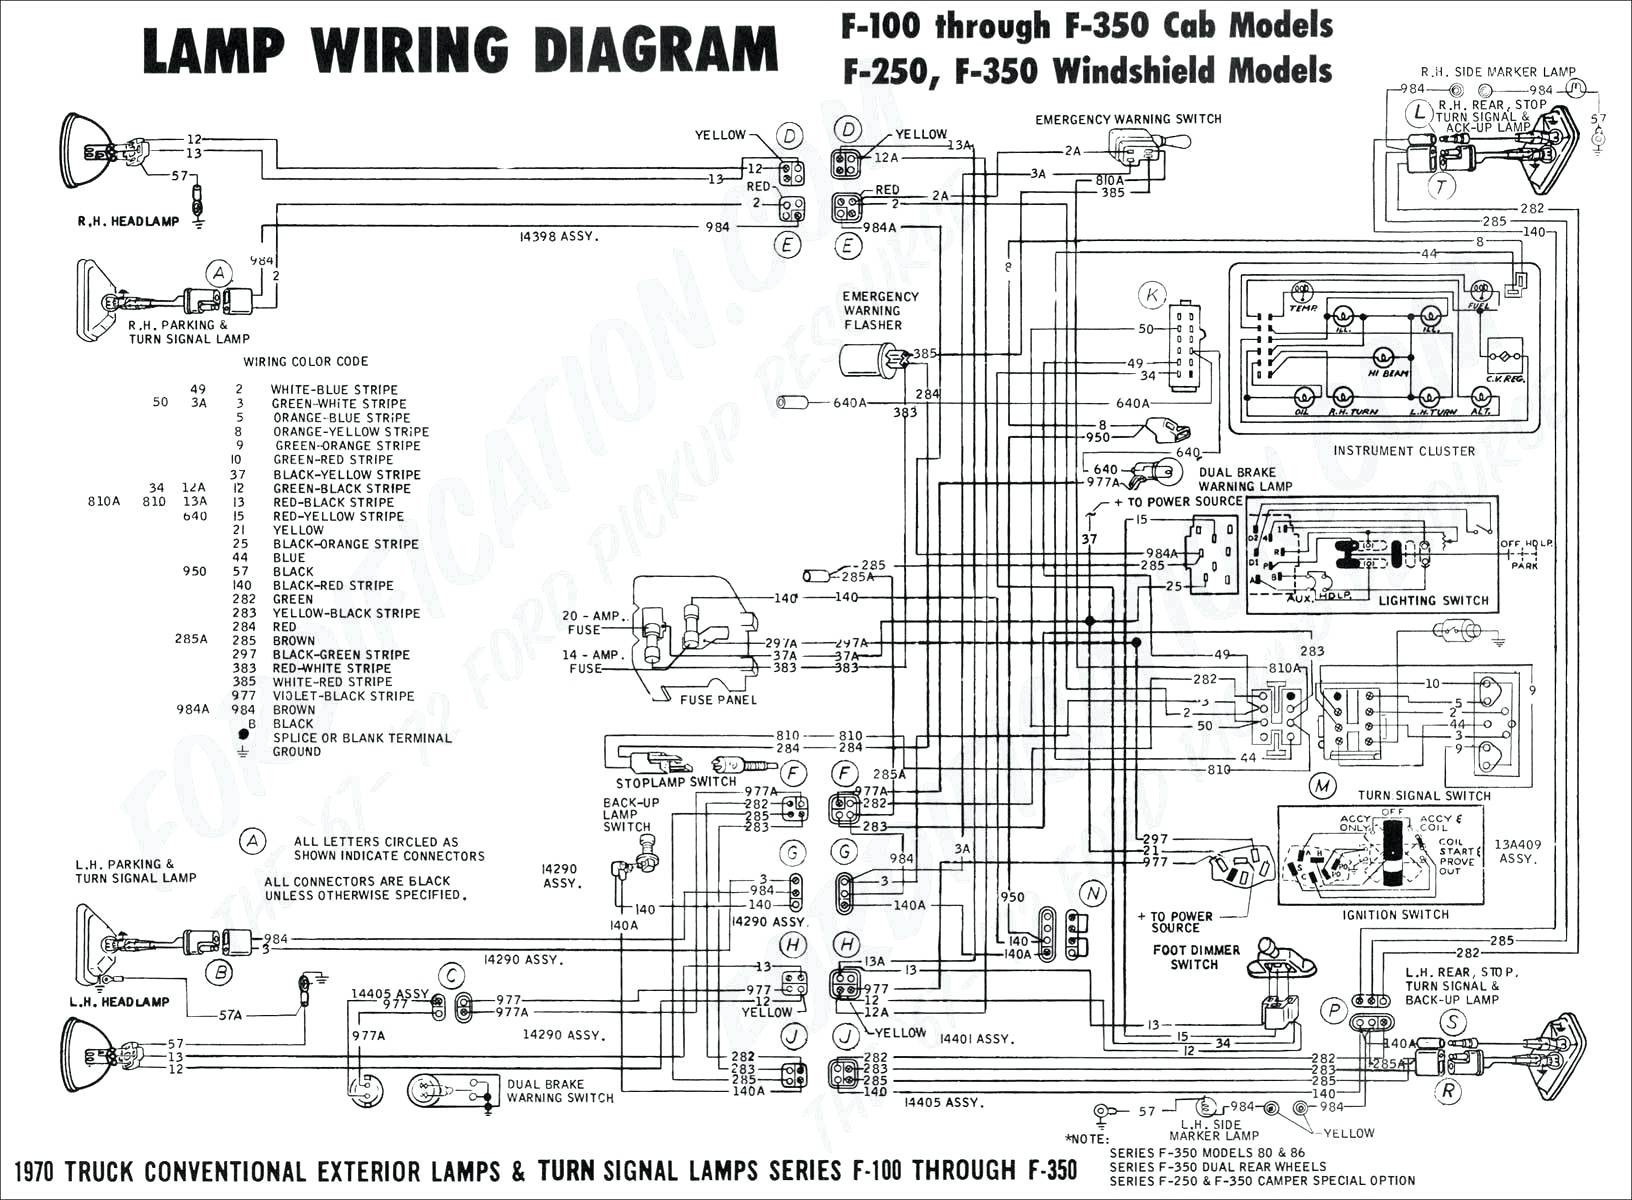 Chevy Uplander 2005 Stereo Wiring | Wiring Diagram Database on cooling fan wiring harness, backup light wiring harness, engine wiring harness, steering column wiring harness, speaker wiring harness, blower motor wiring harness, transfer case wiring harness, tail light wiring harness, fuse box wiring harness, fuel tank wiring harness, third brake light wiring harness, fan clutch wiring harness,